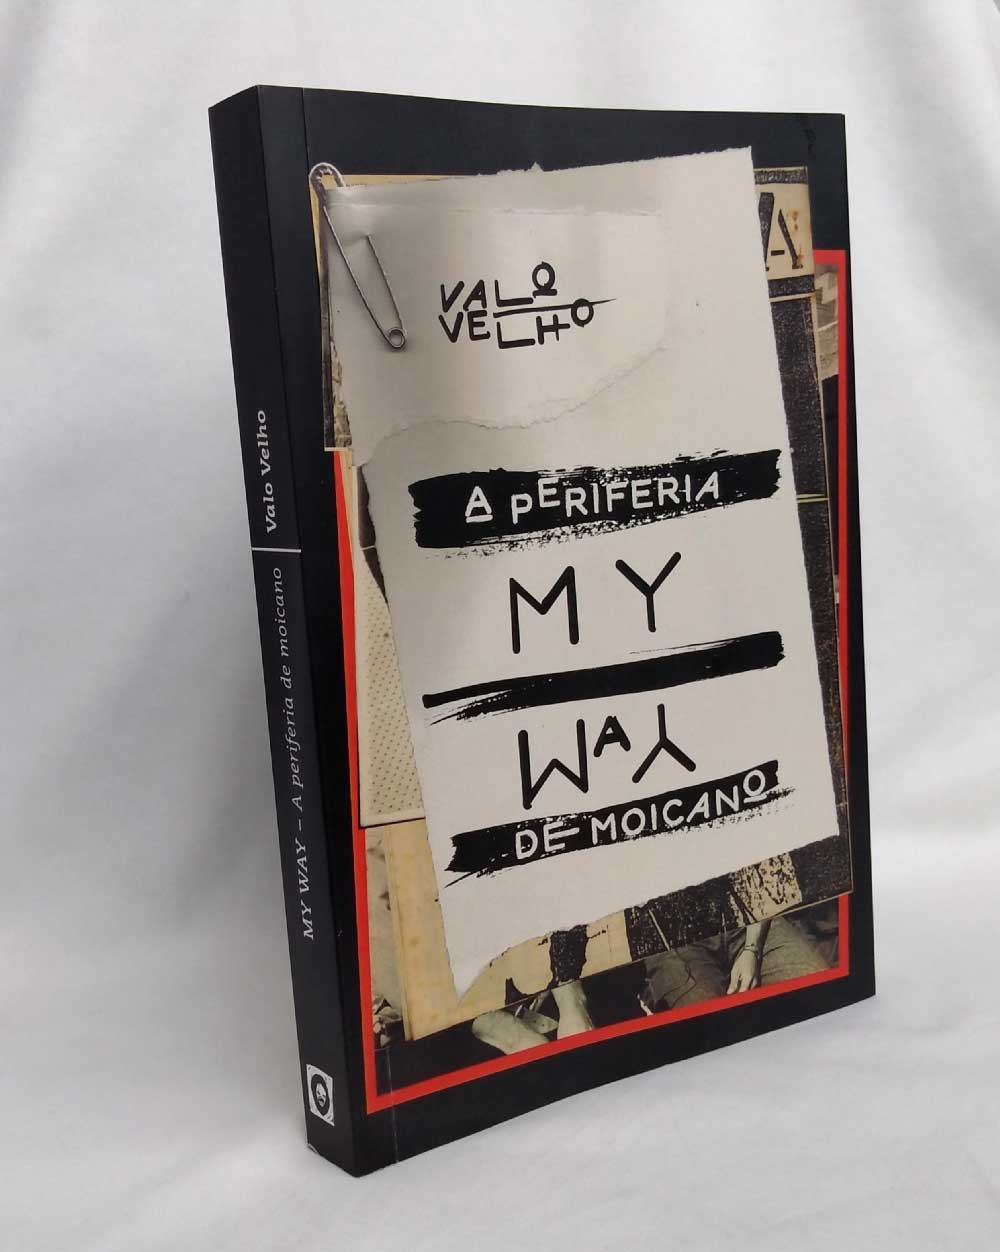 My Way - A Periferia de Moicano